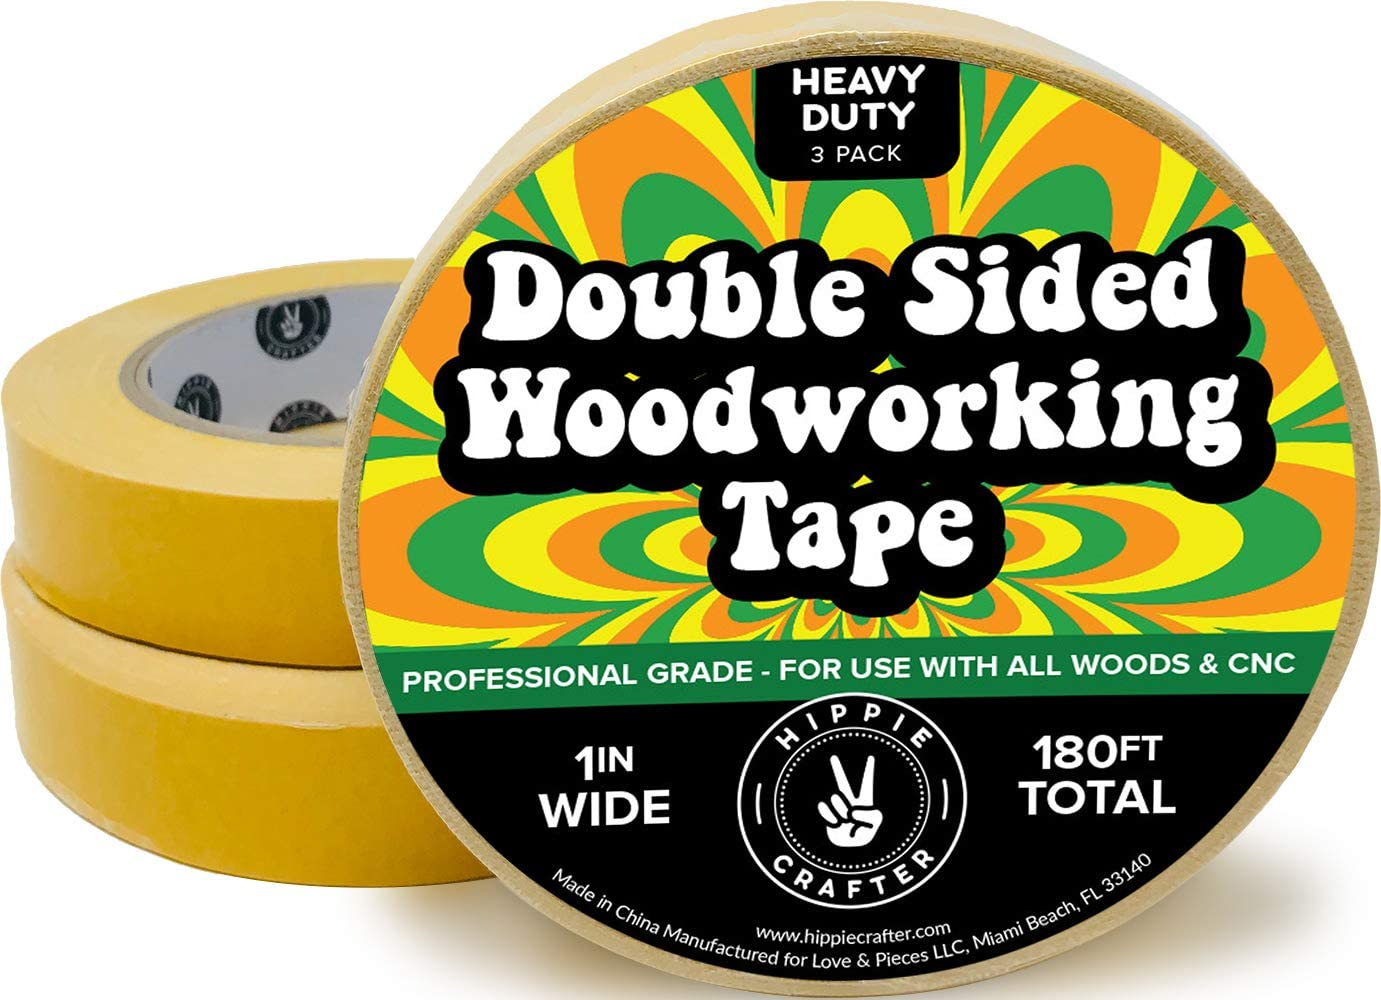 """3 Pk Double Stick Tape for Woodworking - 1 inch Wide Wood Tape Double Sided for Woodworkers - 3 Packs 1"""" x 60 Feet (180FT Total)"""